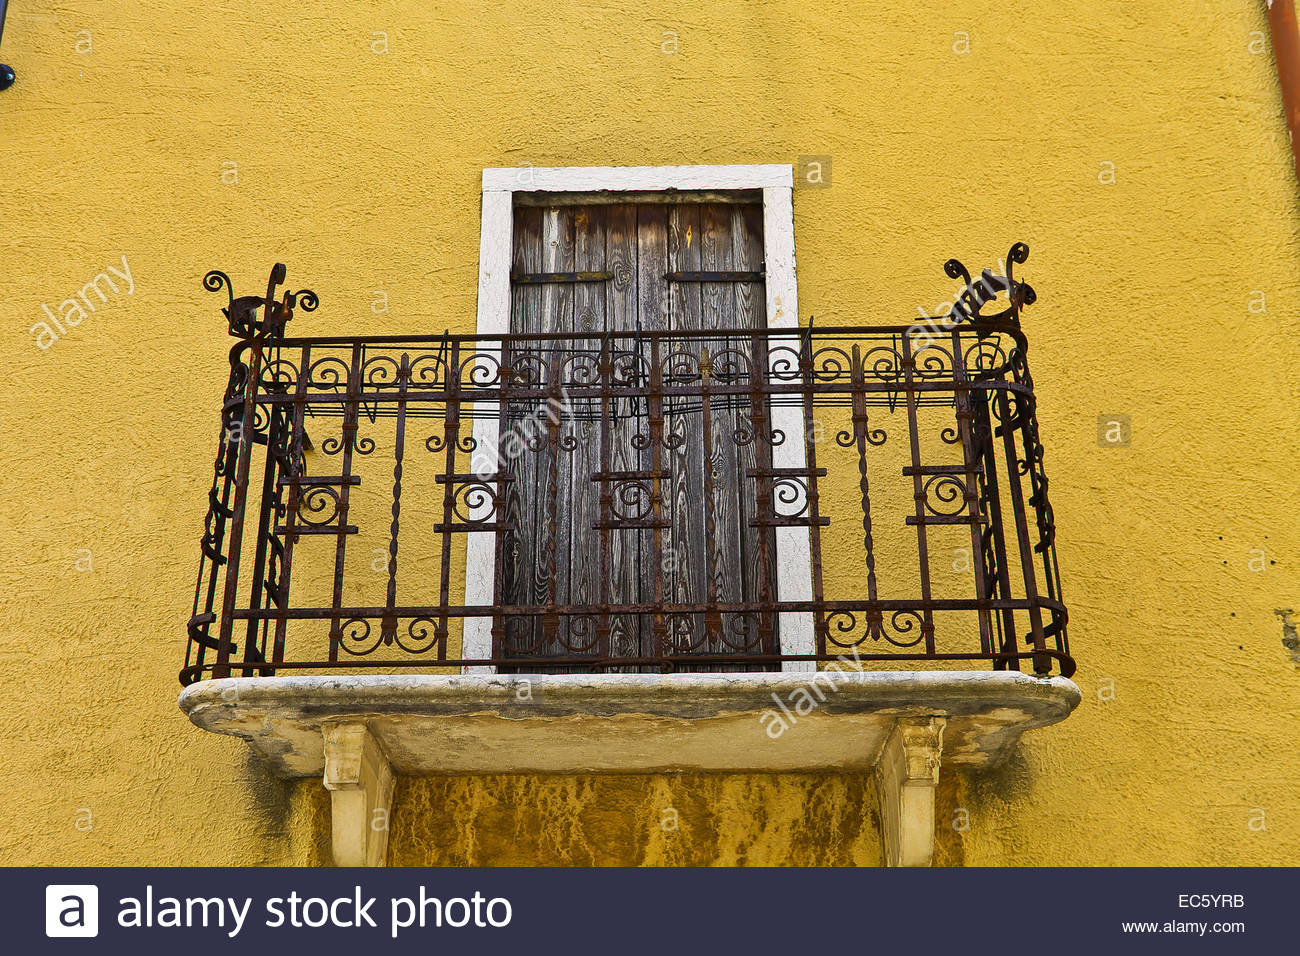 Nice Decorative Ironwork For Walls Images - The Wall Art ...